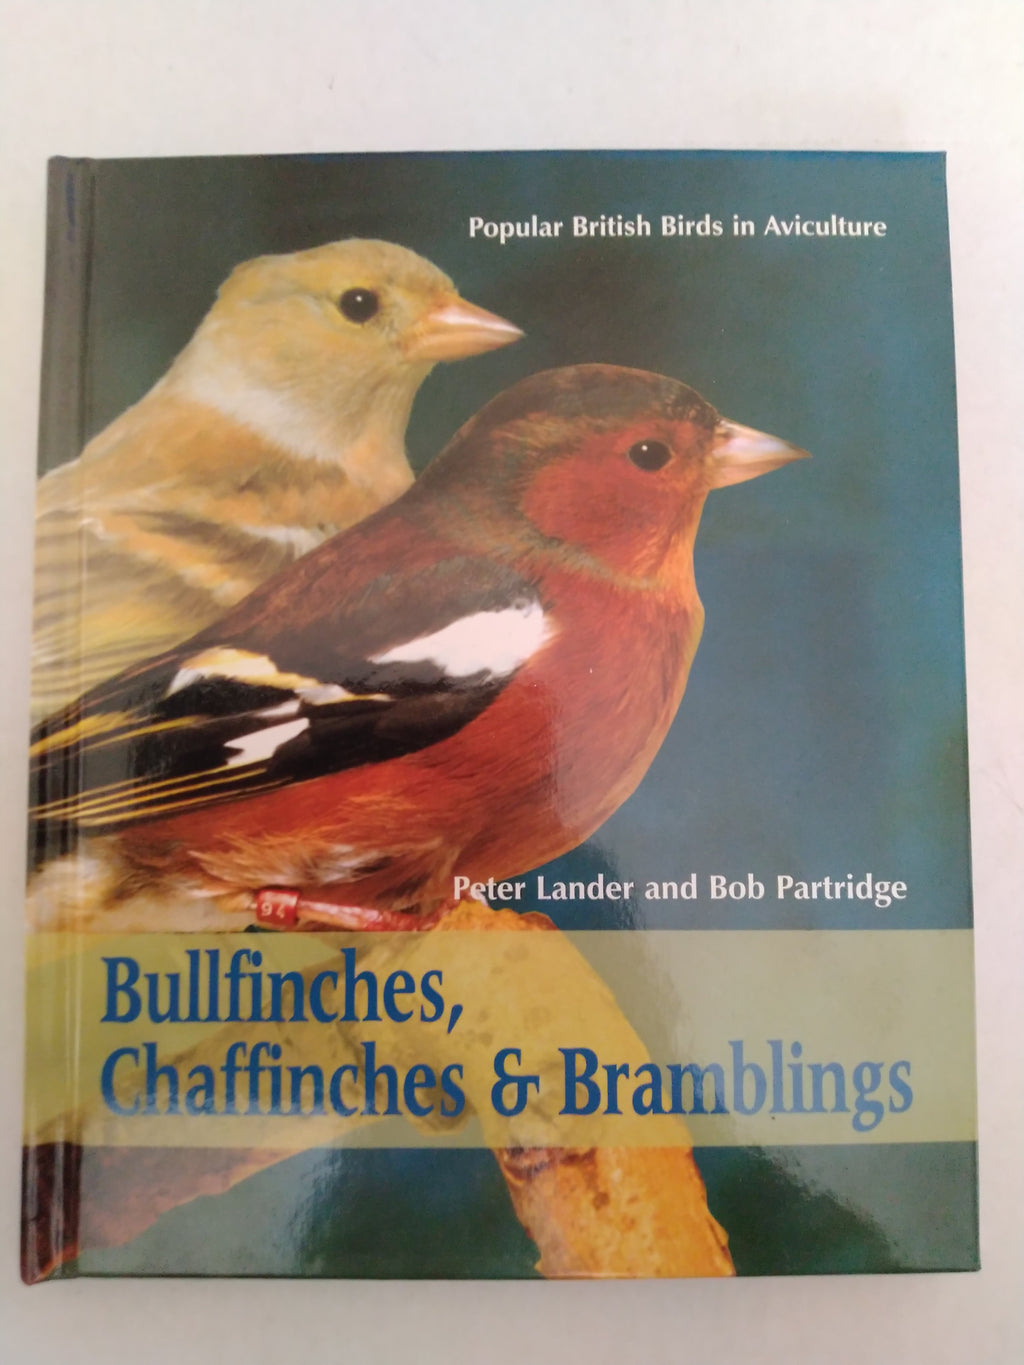 Bullfinches, Chaffinches and Bramblings: Popular British Birds in Aviculture by Peter Lander, Bob Partridge